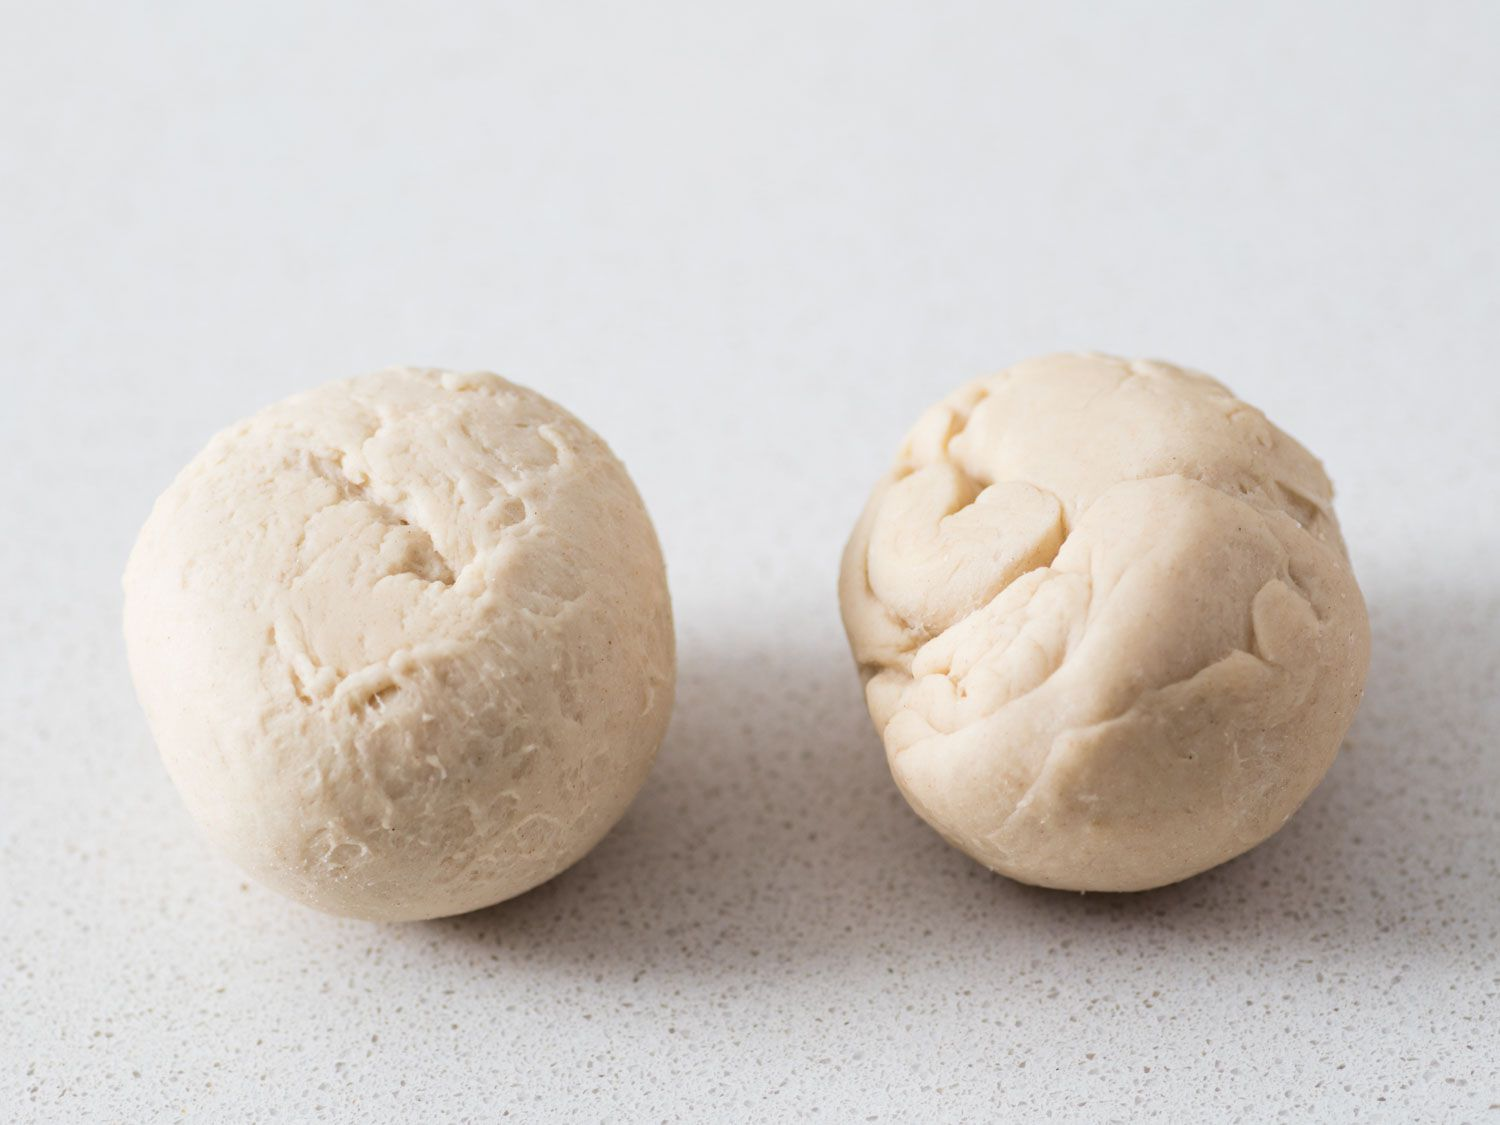 Rolled balls of bagel dough showing properly rolled ball (left) and not fully rolled ball (right).